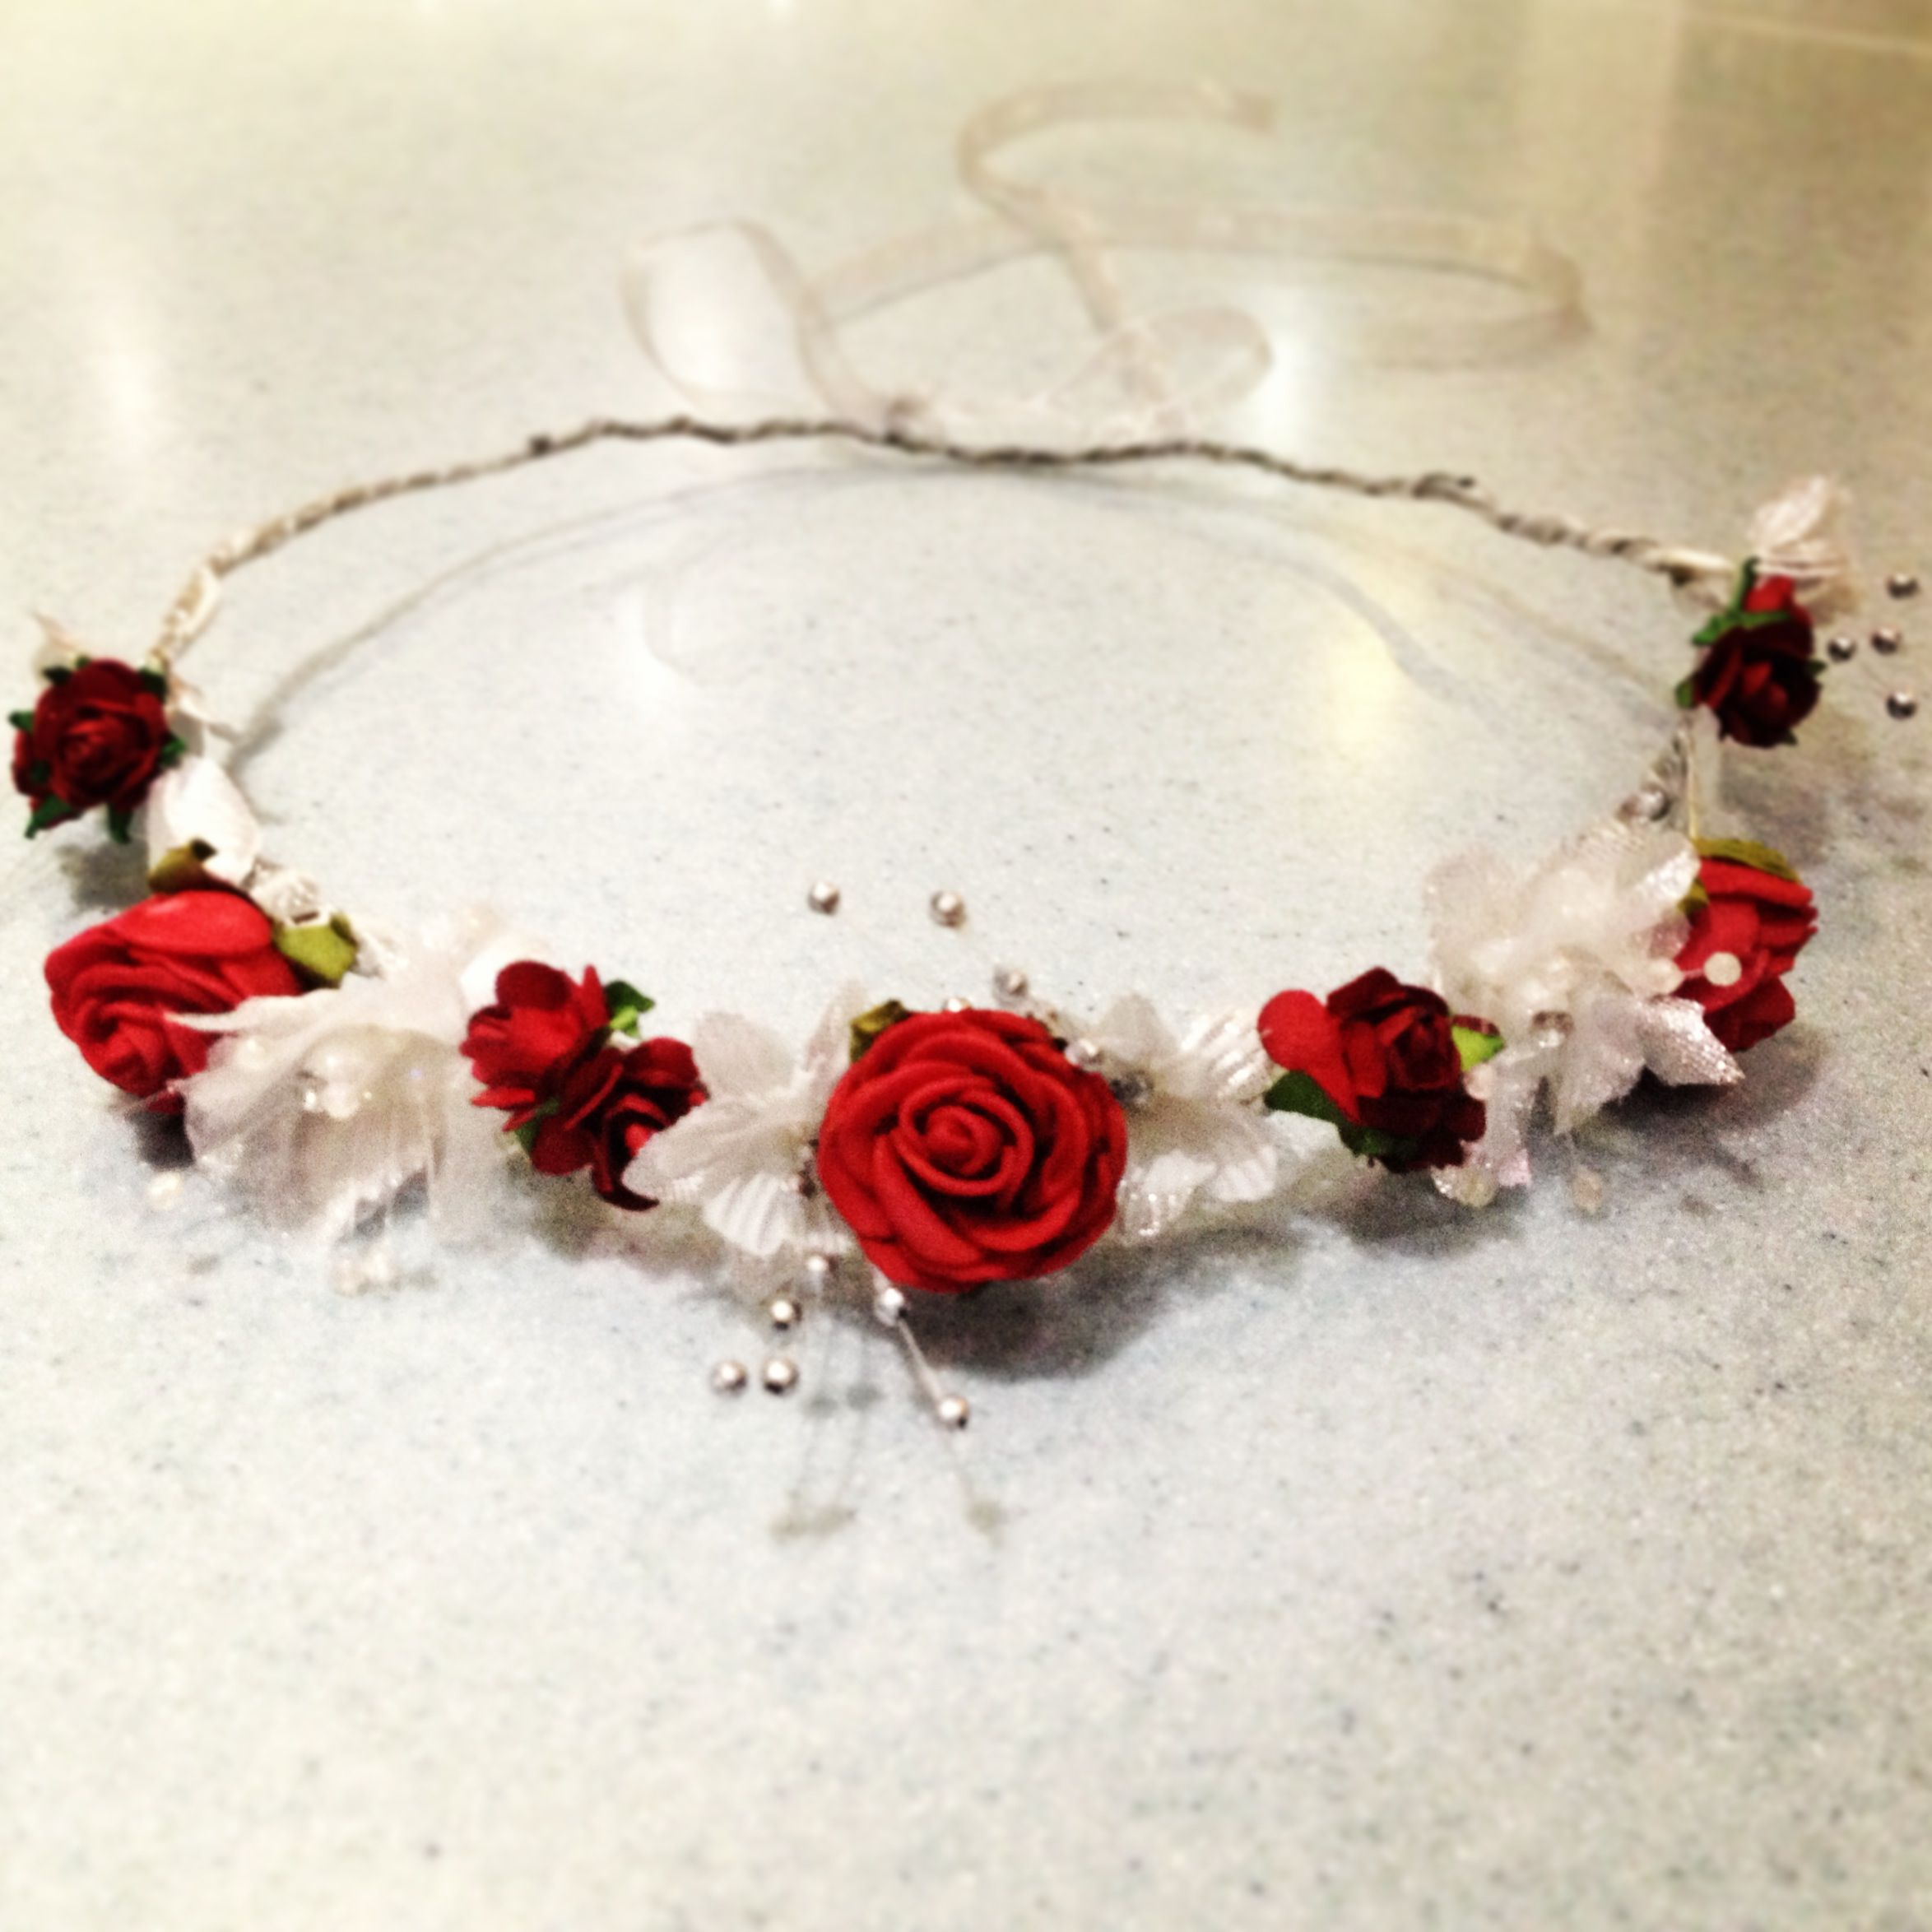 Red and silver wedding hair garland flower crown handmade by me red and silver wedding hair garland flower crown handmade by me izmirmasajfo Image collections